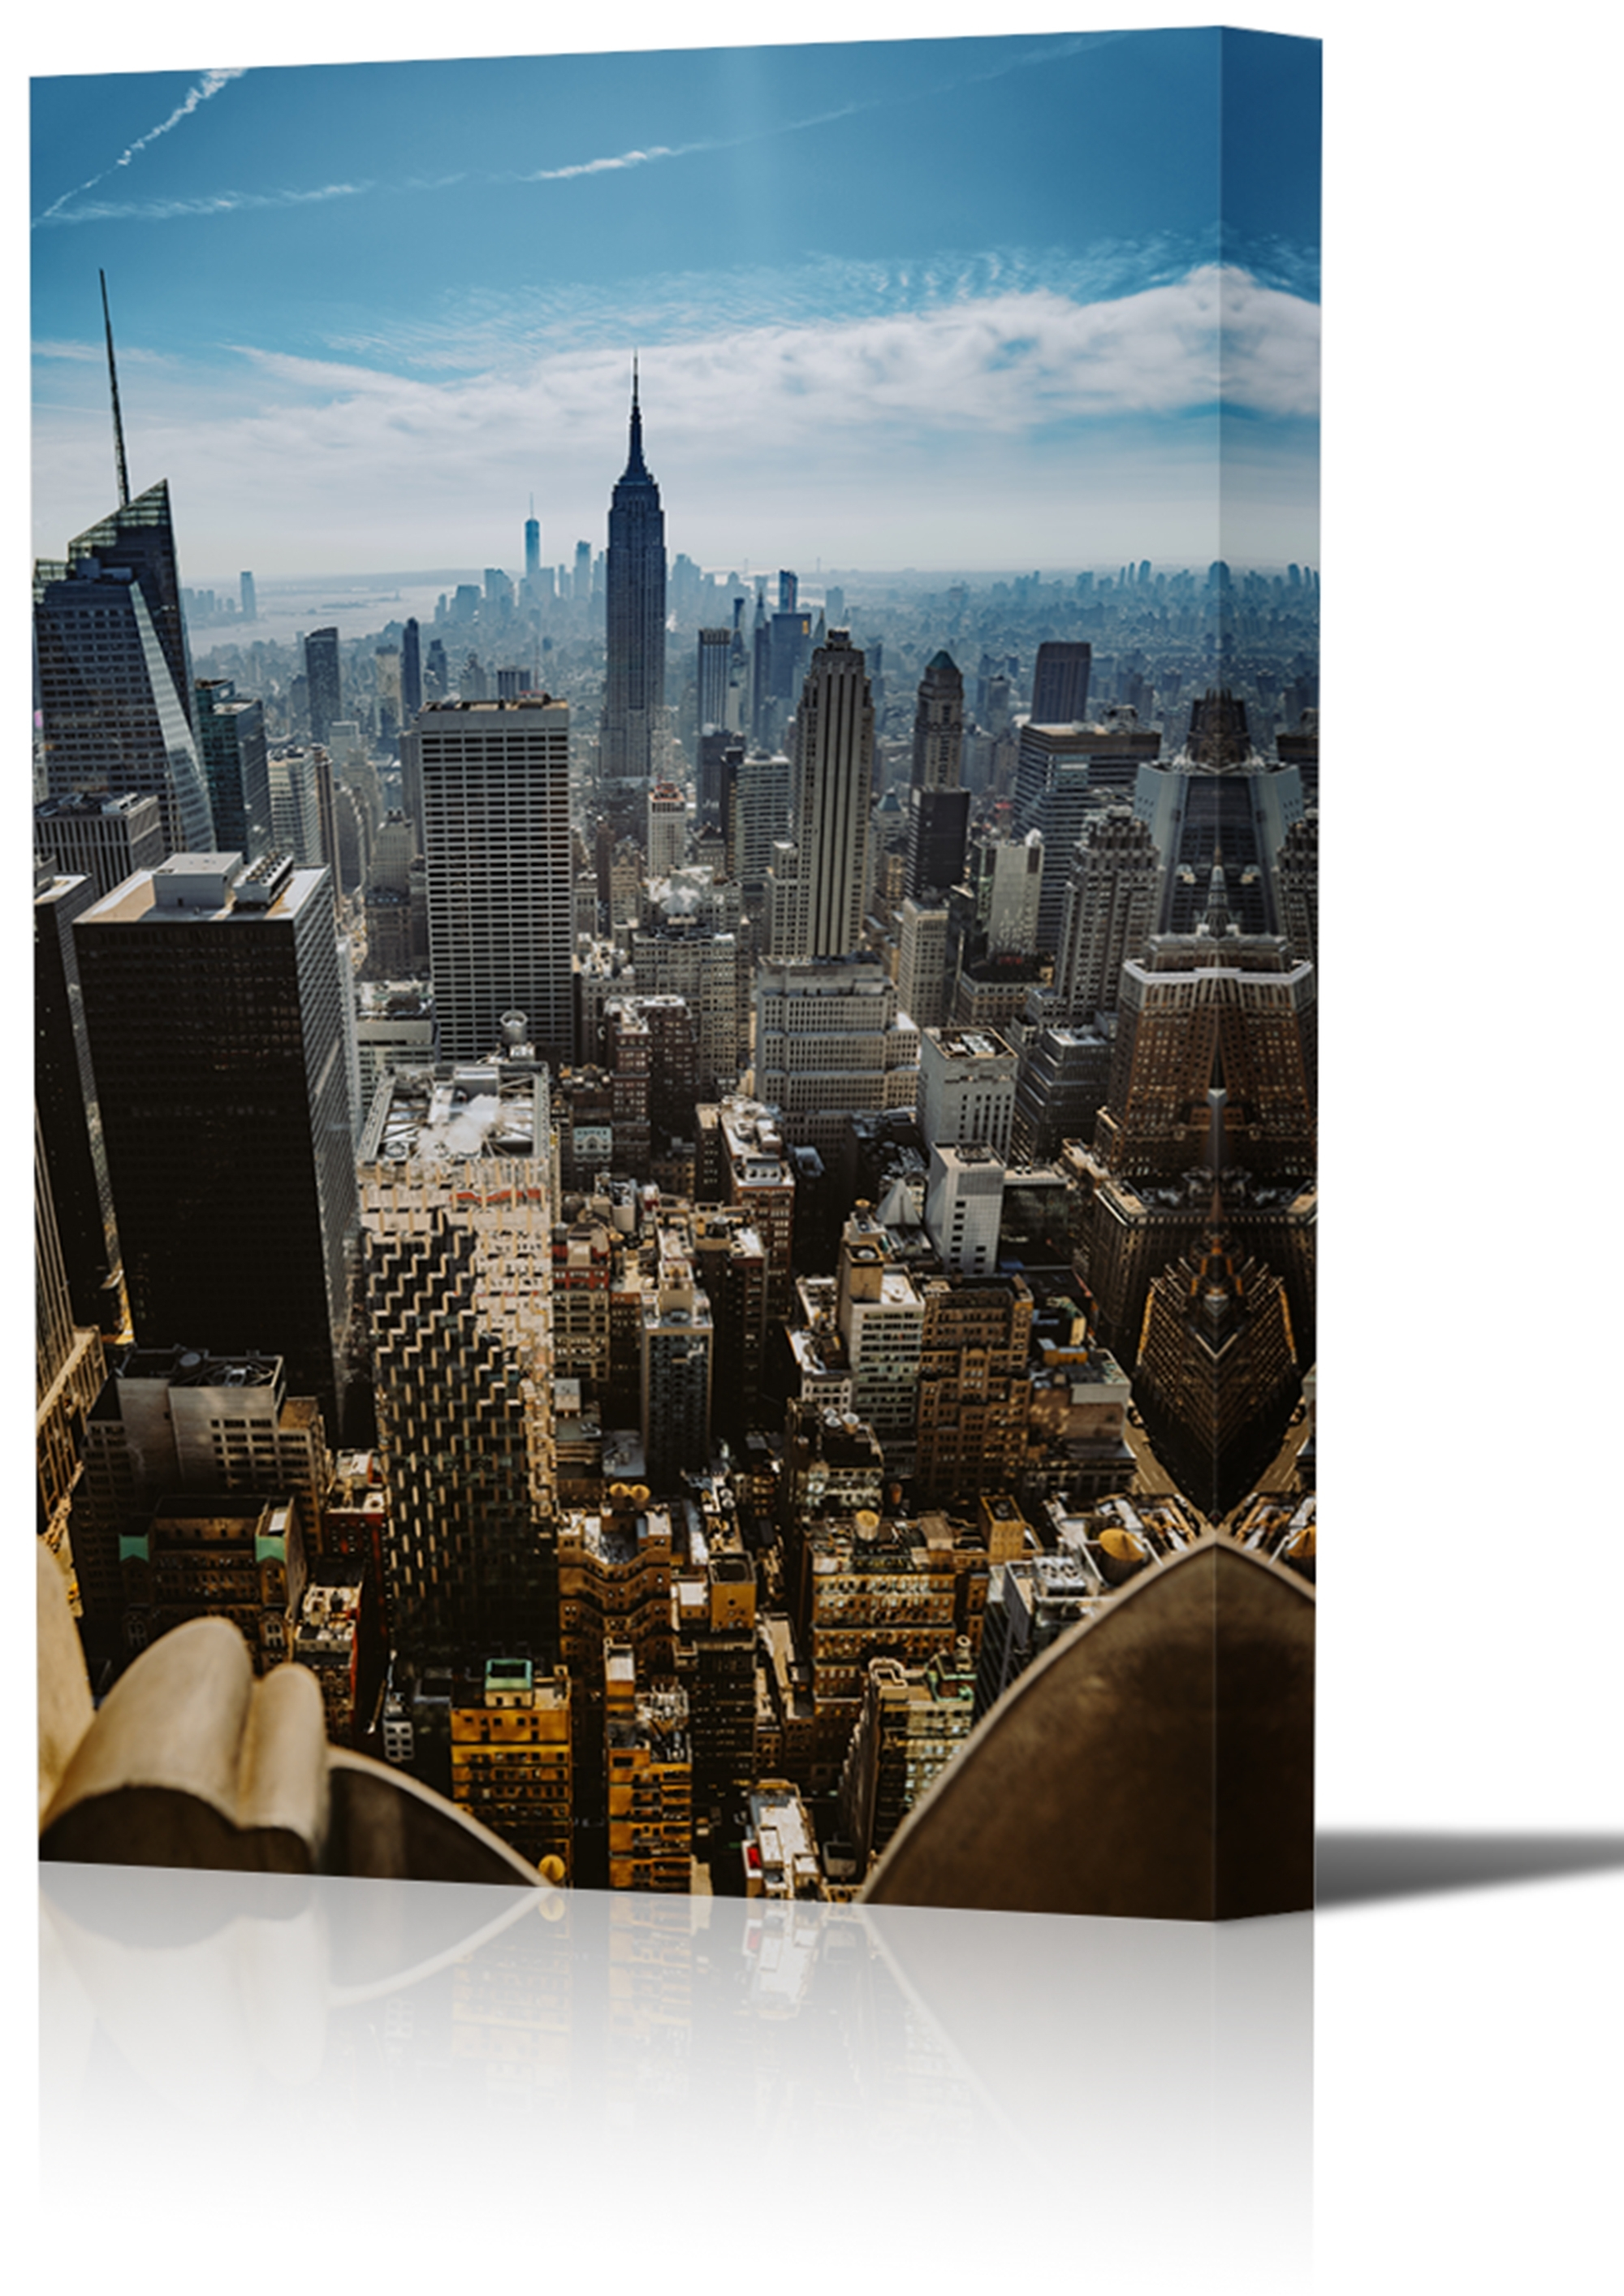 Top Of The Rock New York City Art Print Wall Decor Image Canvas Pertaining To Most Up To Date New York Wall Art (View 9 of 15)